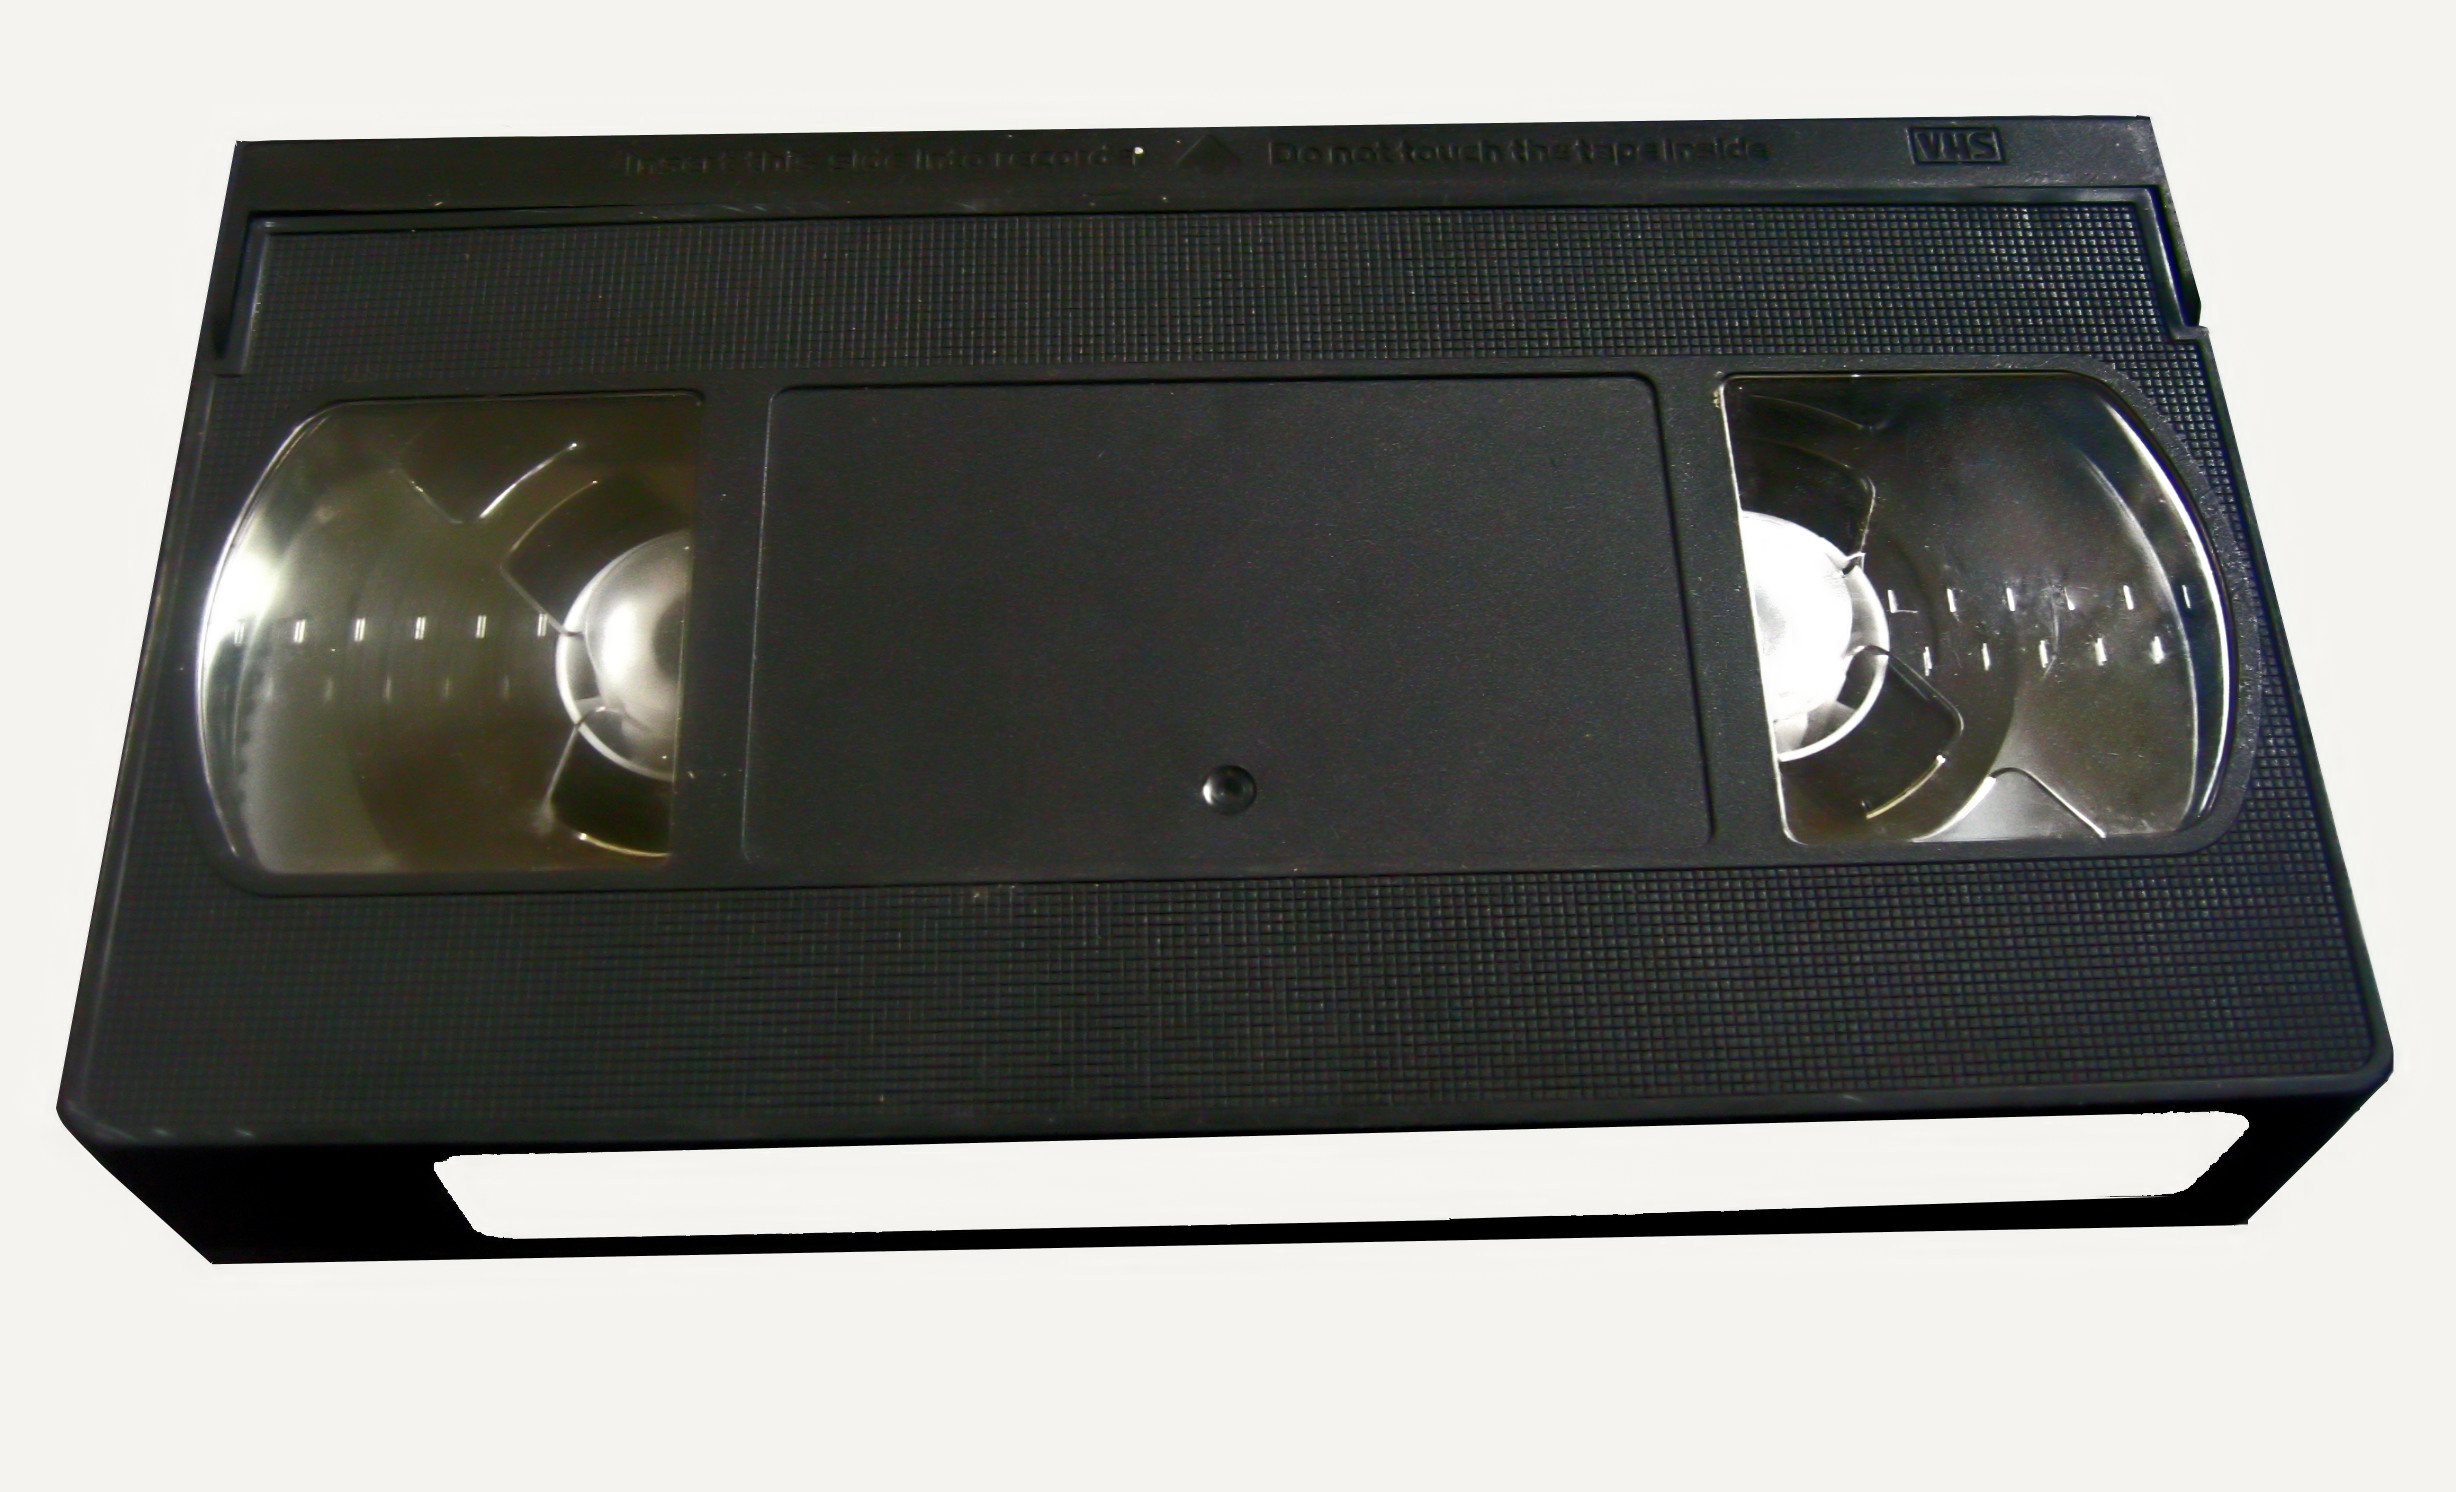 God, do you remember these? They would always get stuck in my VCR and eat the tape. Then my VCR would become sentient and eat all my other tapes and leave. That happened to everyone, right?